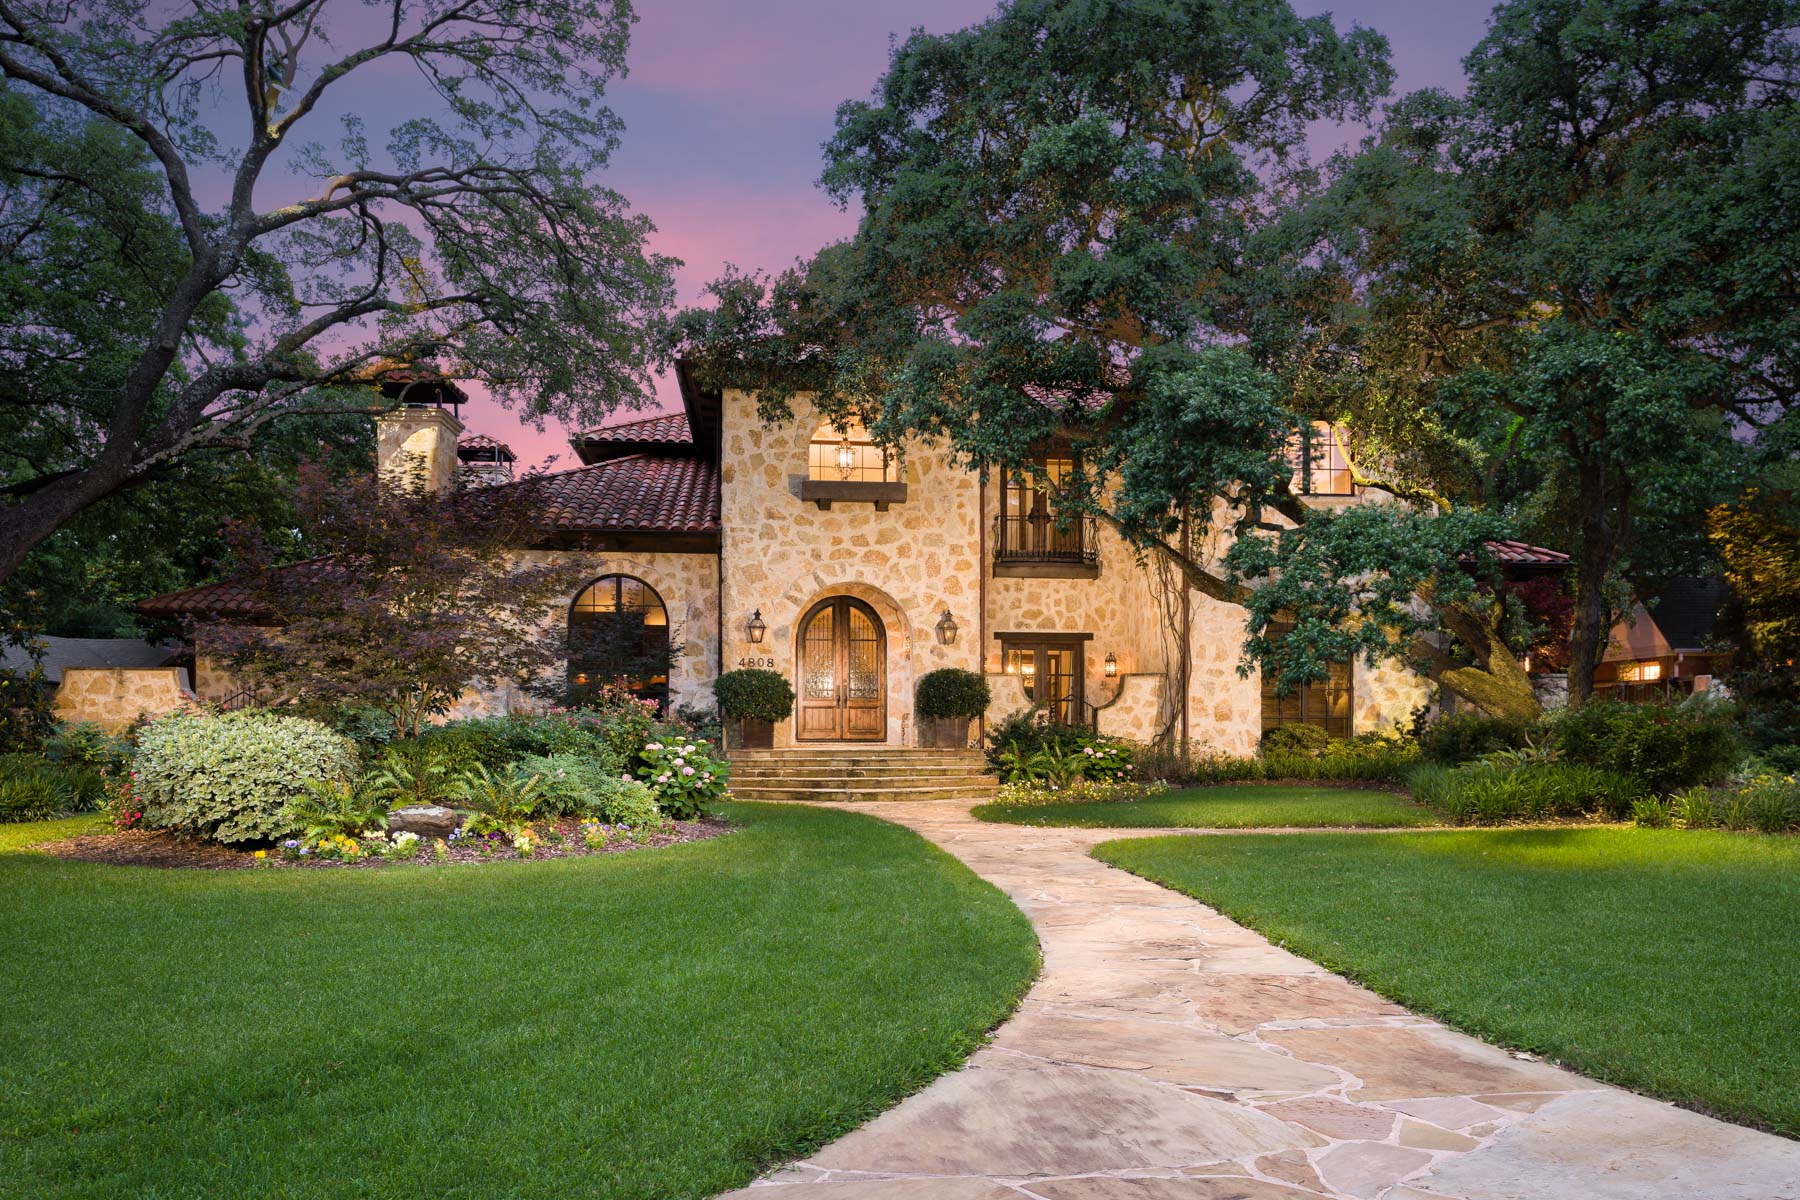 Single Family Home for Sale at Mediterranean Preston Hollow Home 4808 Melissa Lane Dallas, Texas, 75229 United States